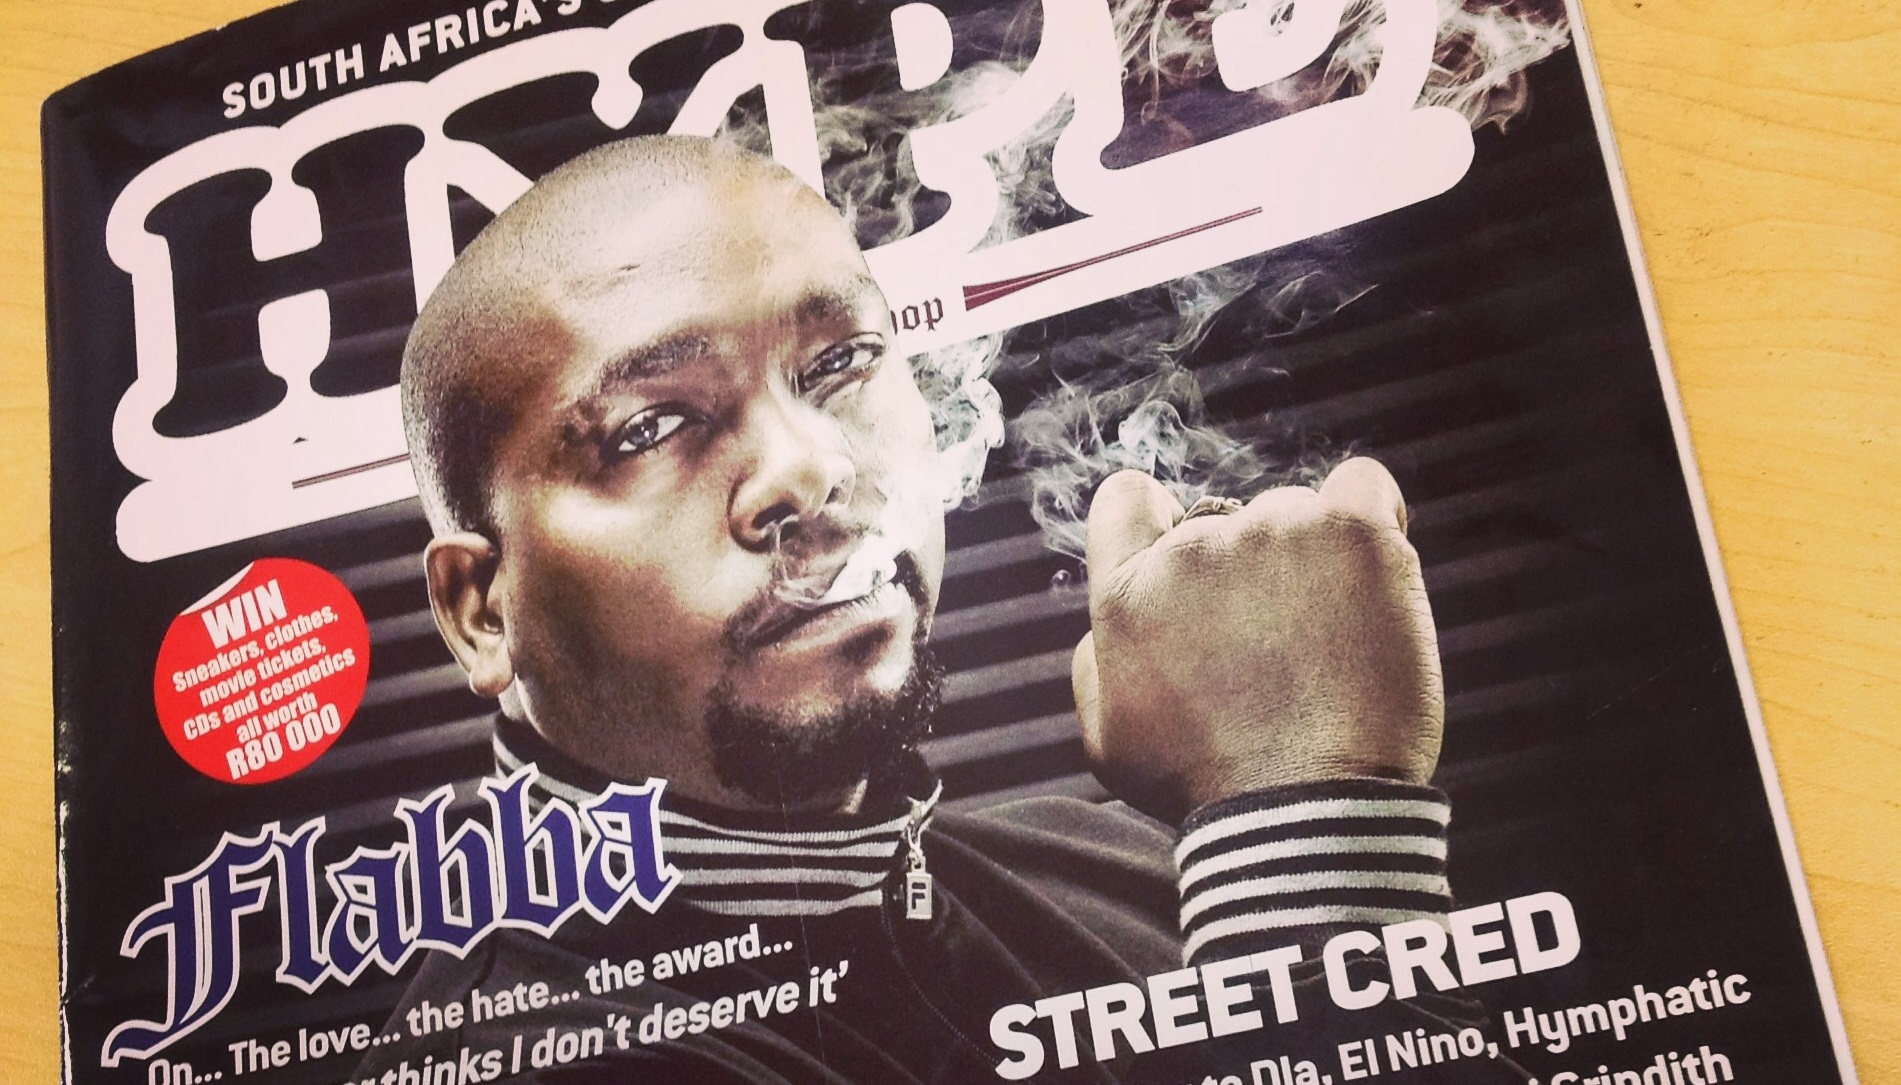 Flabba's Murderer Sentenced To 12 Years image 2 1